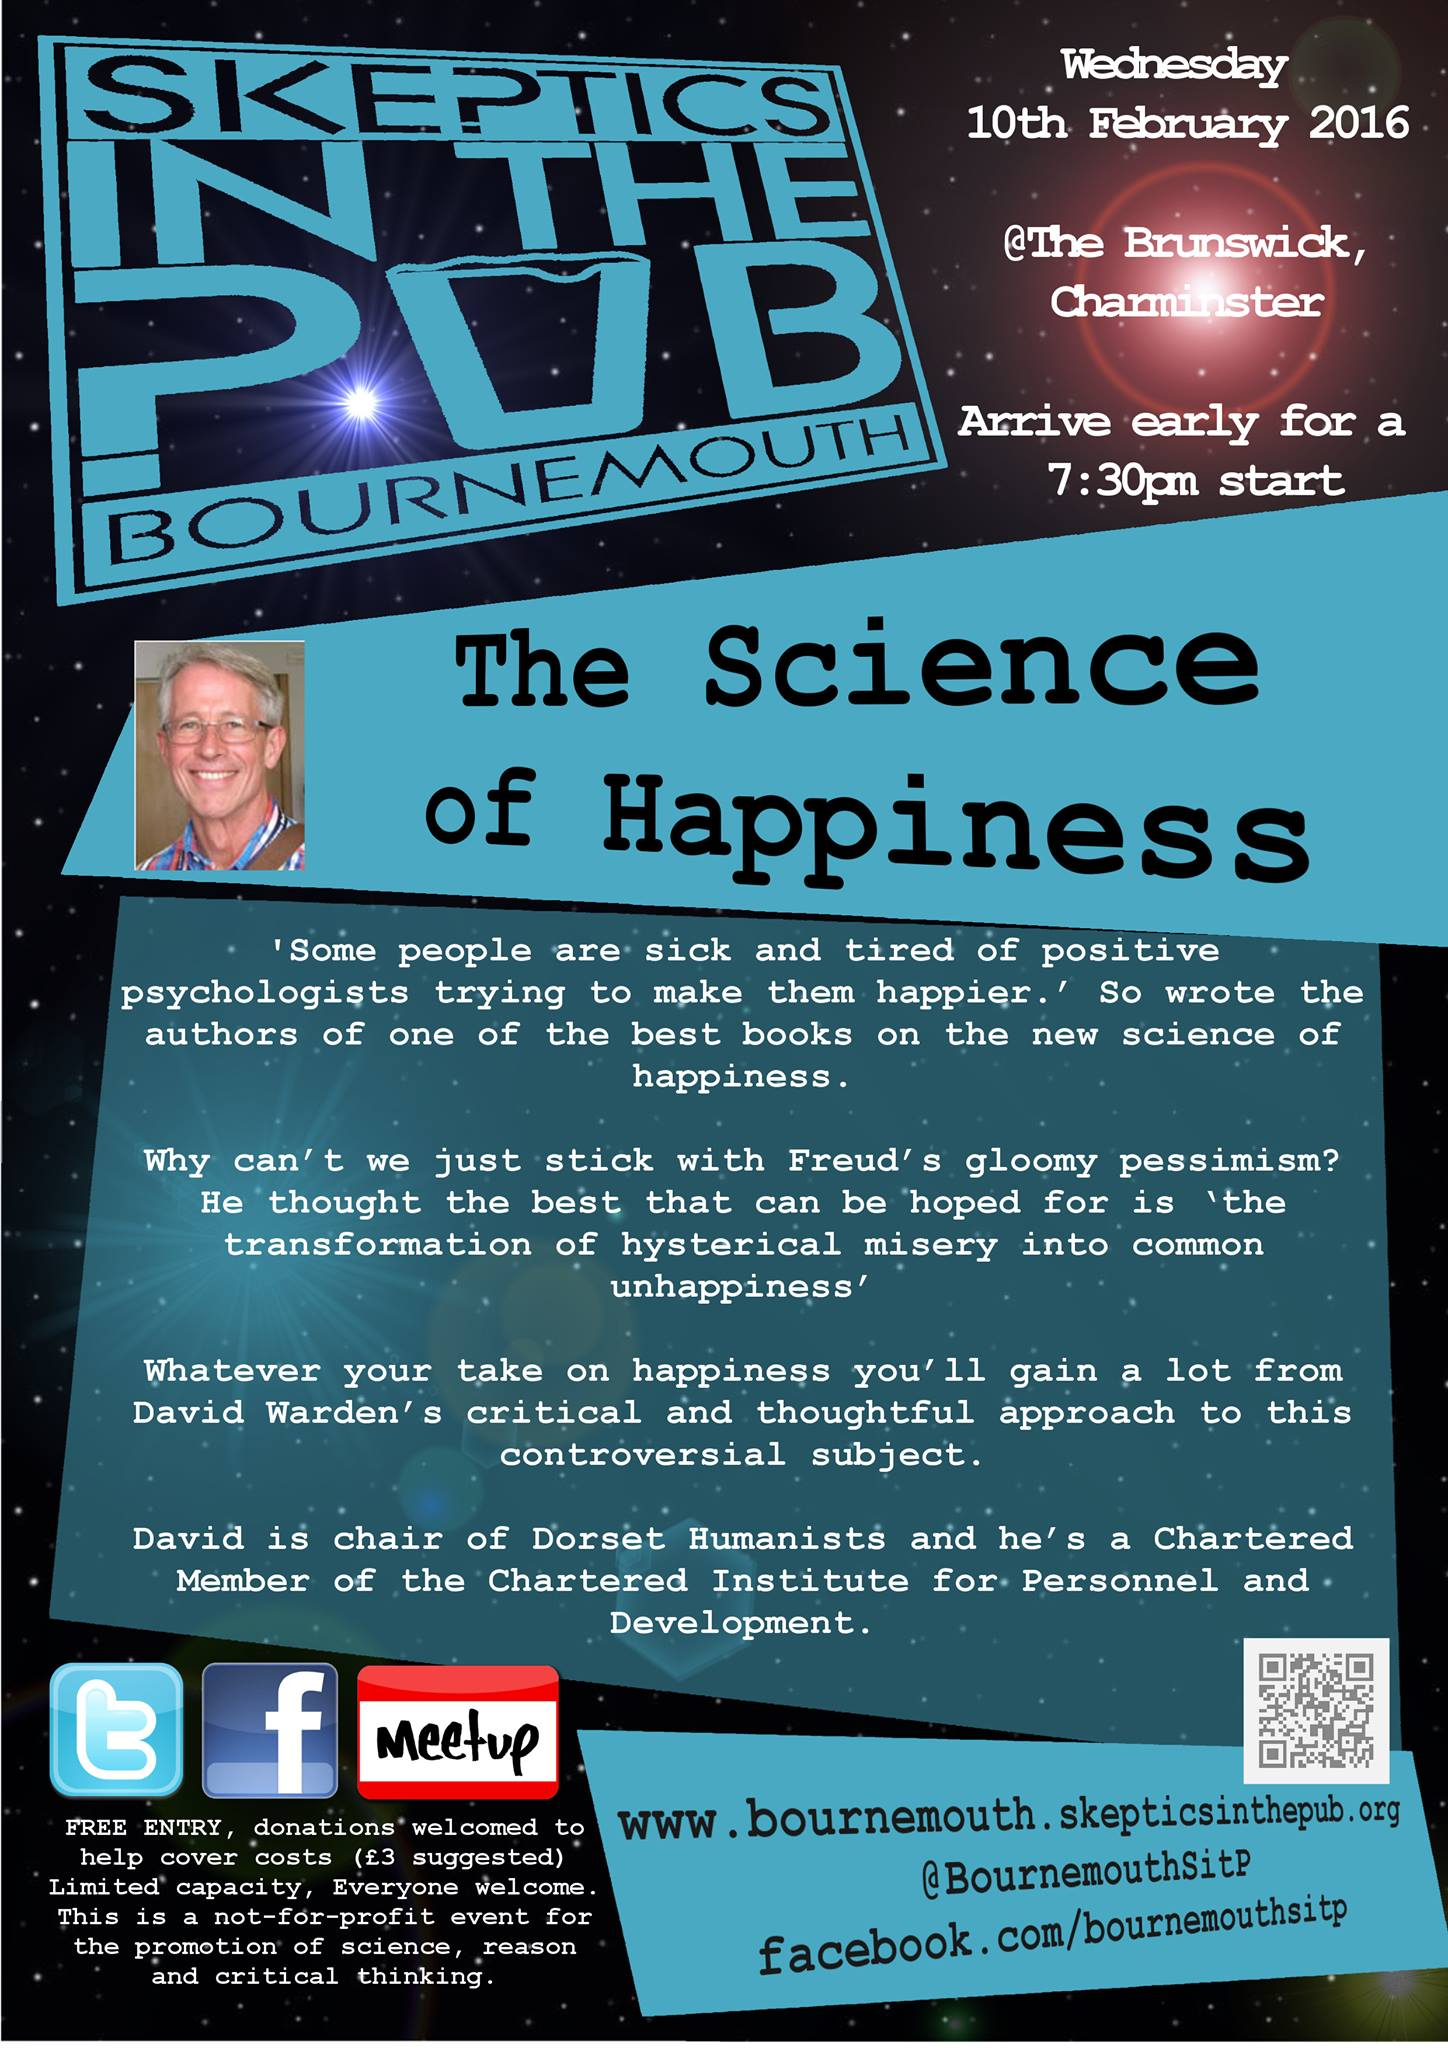 Bournemouth Skeptics In The Pub: The Science of Happiness